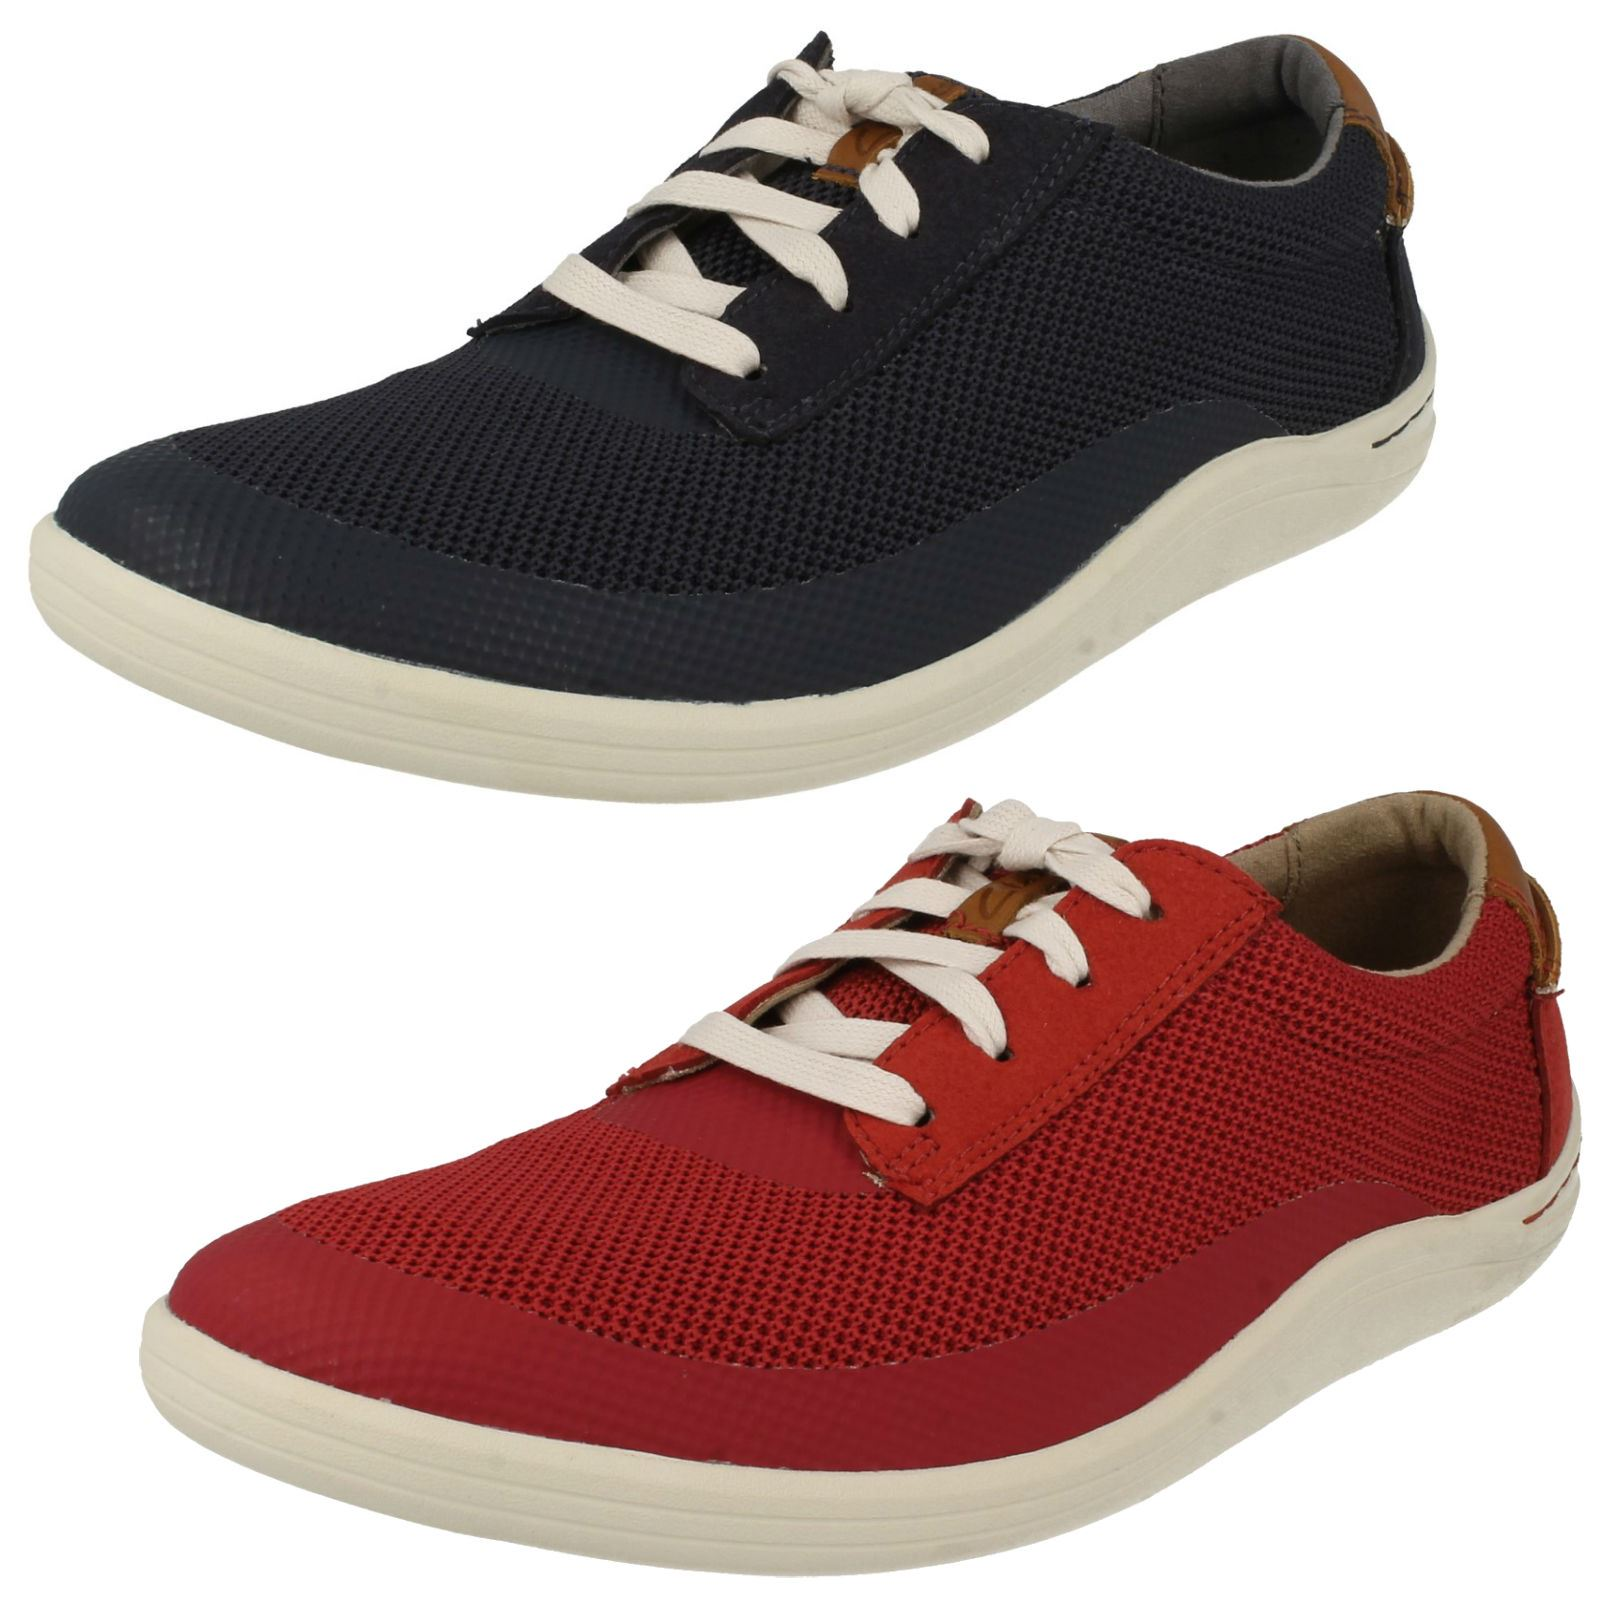 Mens Clarks Casual Lace Up shoes 'Mapped Edge'